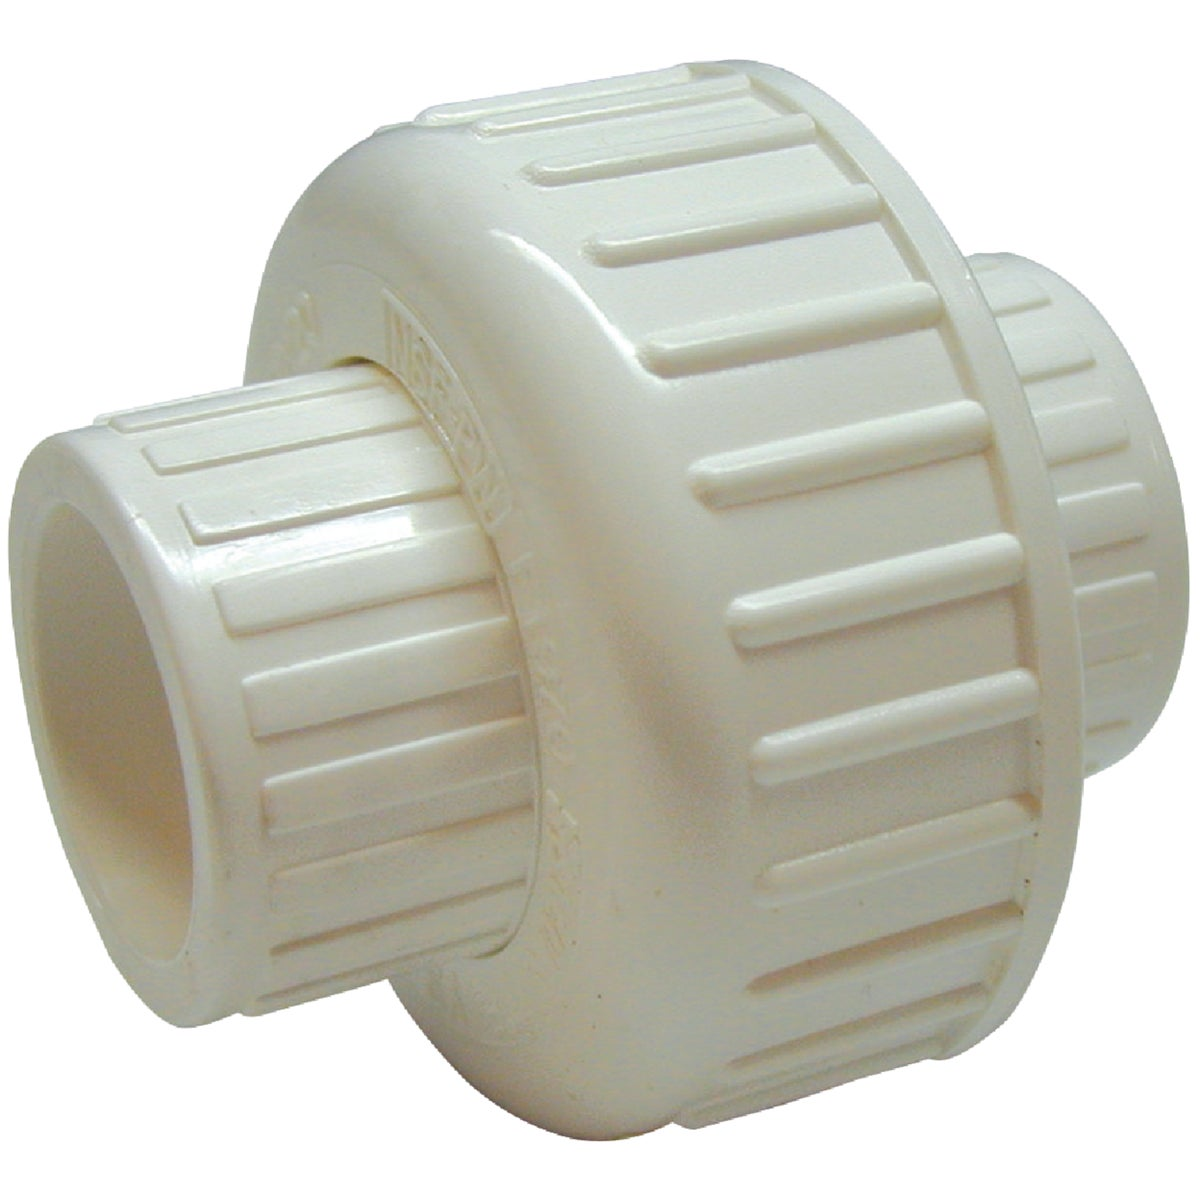 "WHT 1/2"" SXS PVC UNION - 164-633 by Mueller B K"